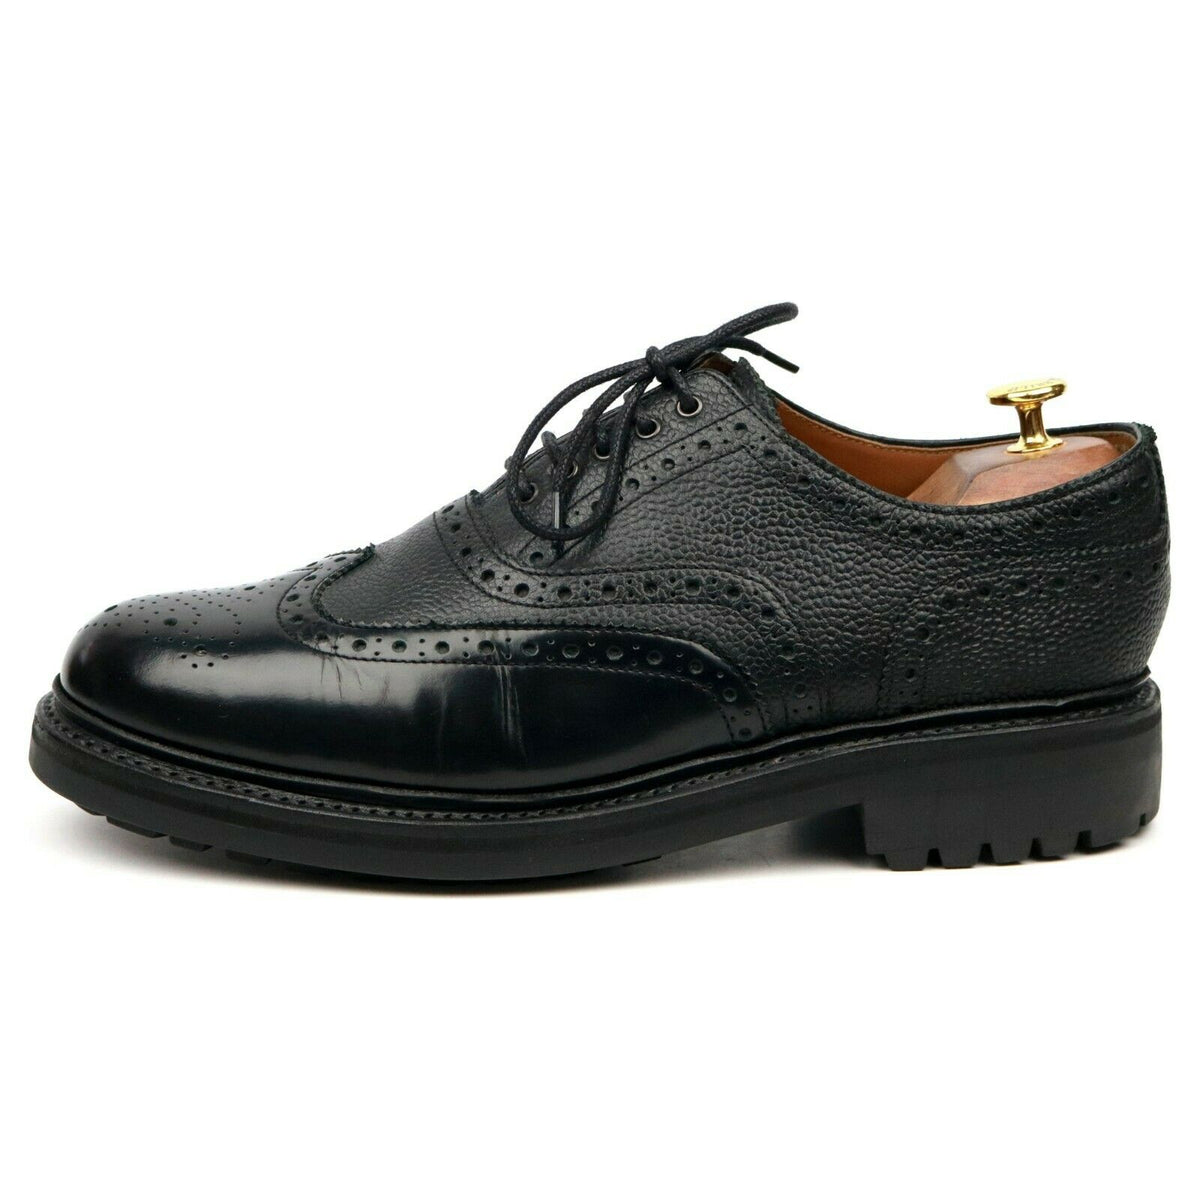 Grenson 'Stanley' Black Leather Brogues UK 10 G